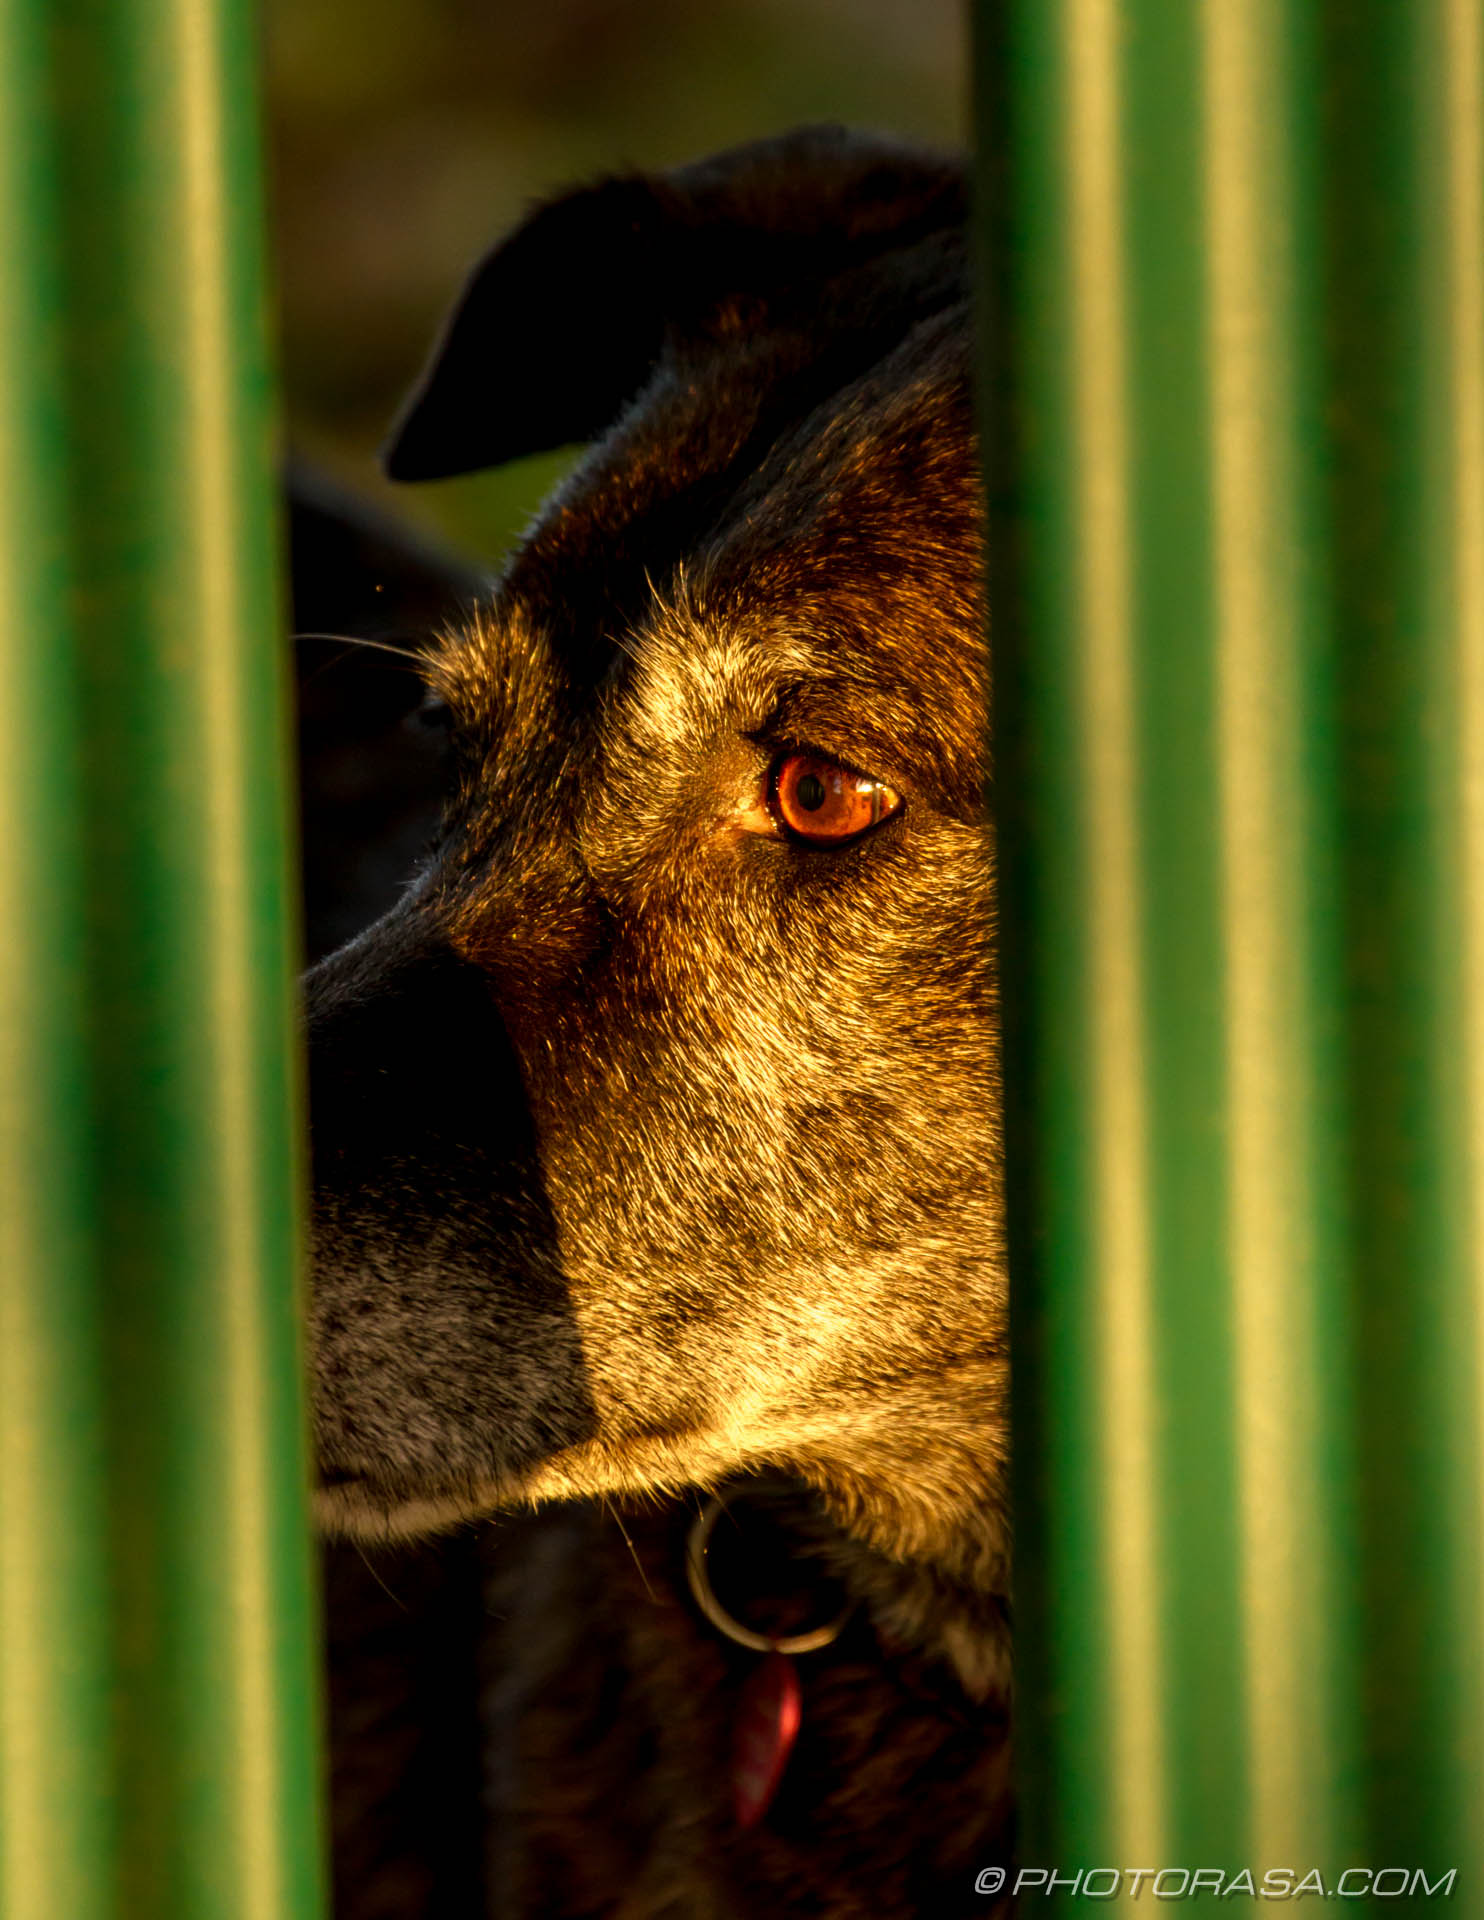 https://photorasa.com/old-guard-dog-fence/dog-looking-across-nervously-in-sunlight/